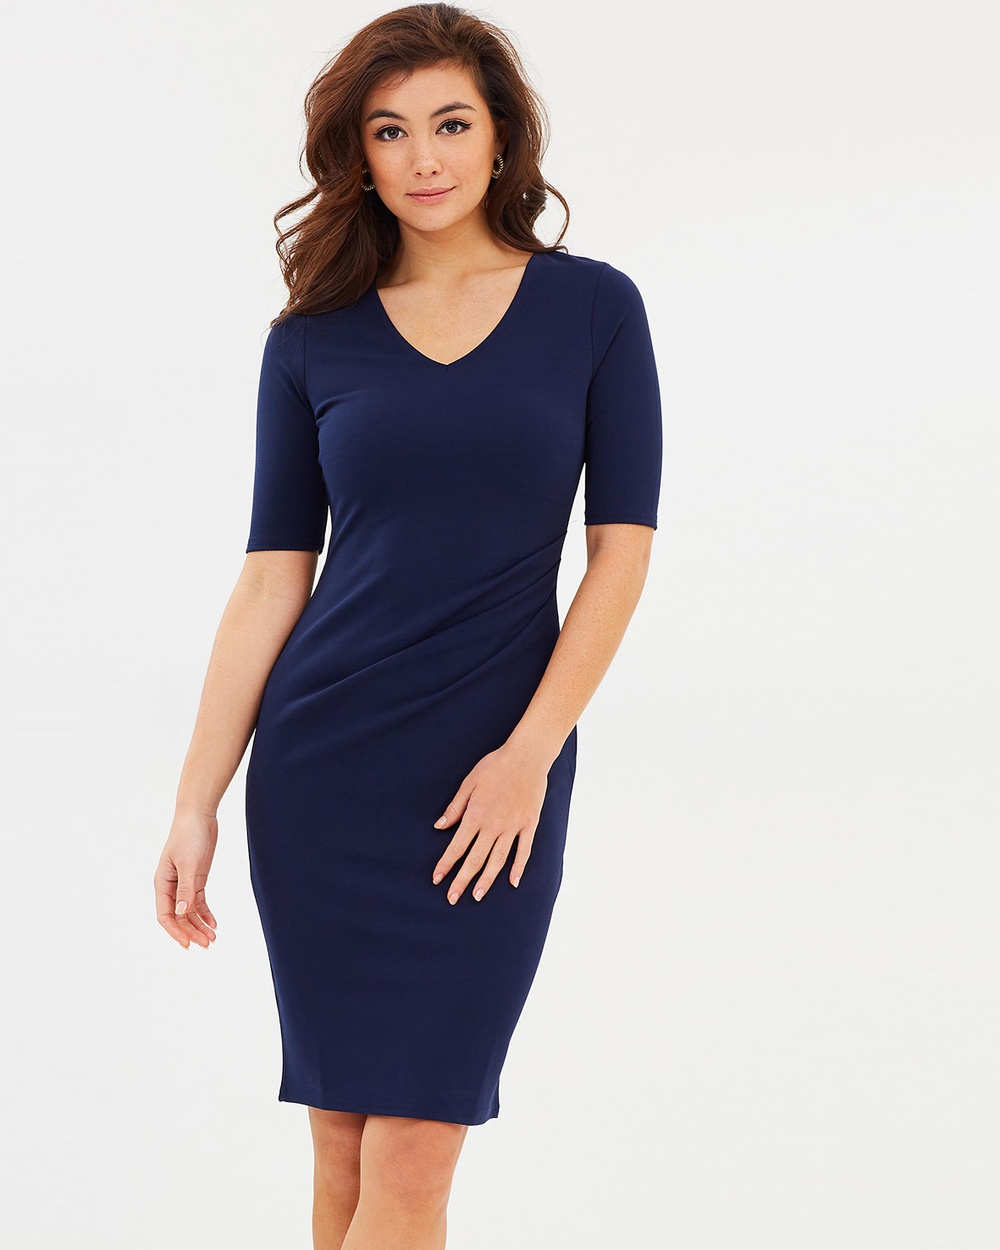 Dorothy Perkins Ruched Bodycon Dress Bodycon Dresses Navy Blue Ruched Bodycon Dress